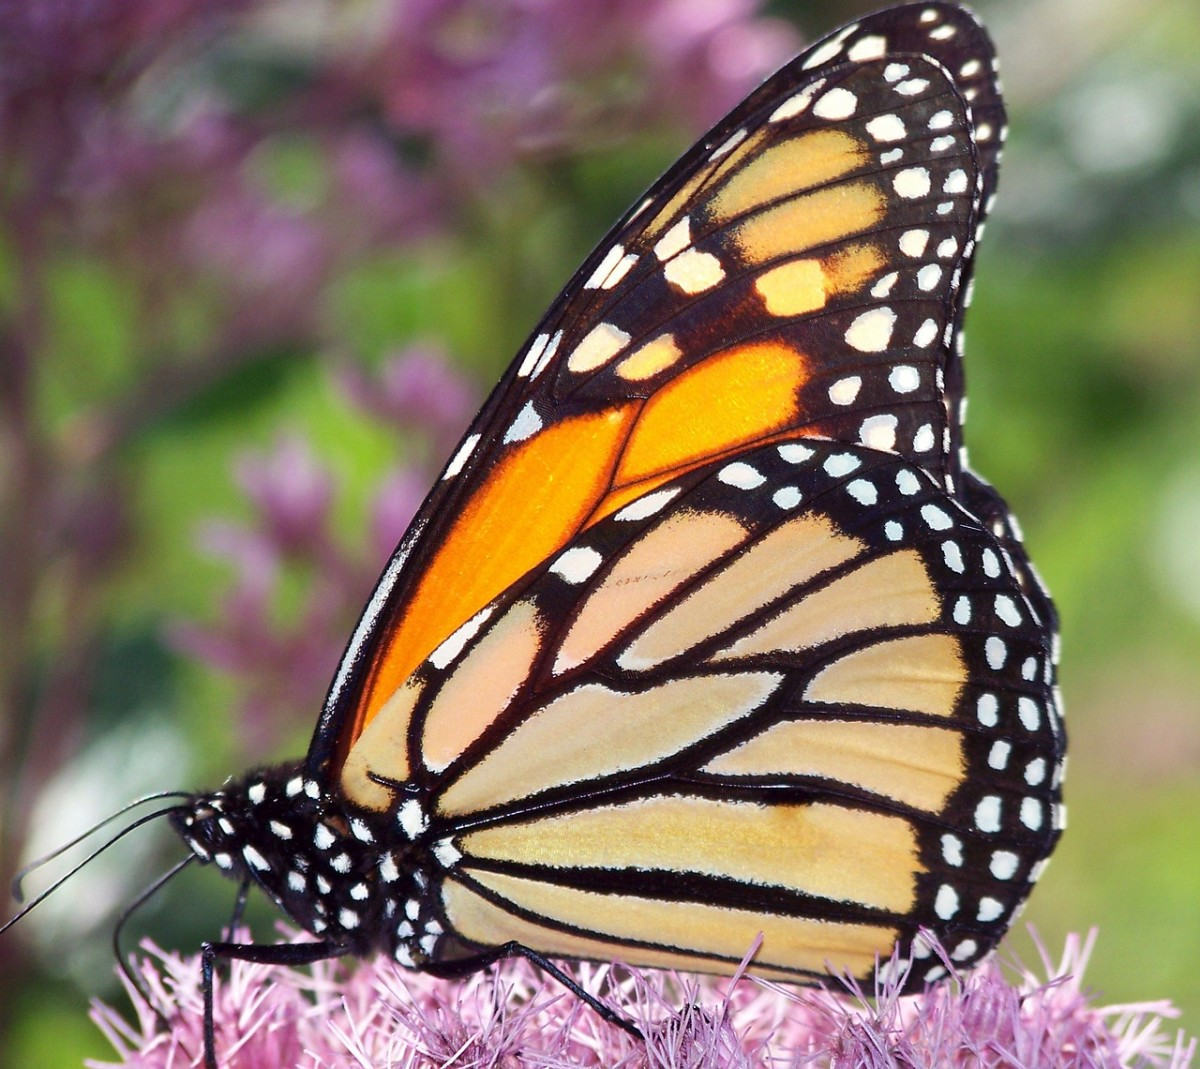 The big, beautiful monarch is an iconic North American butterfly.